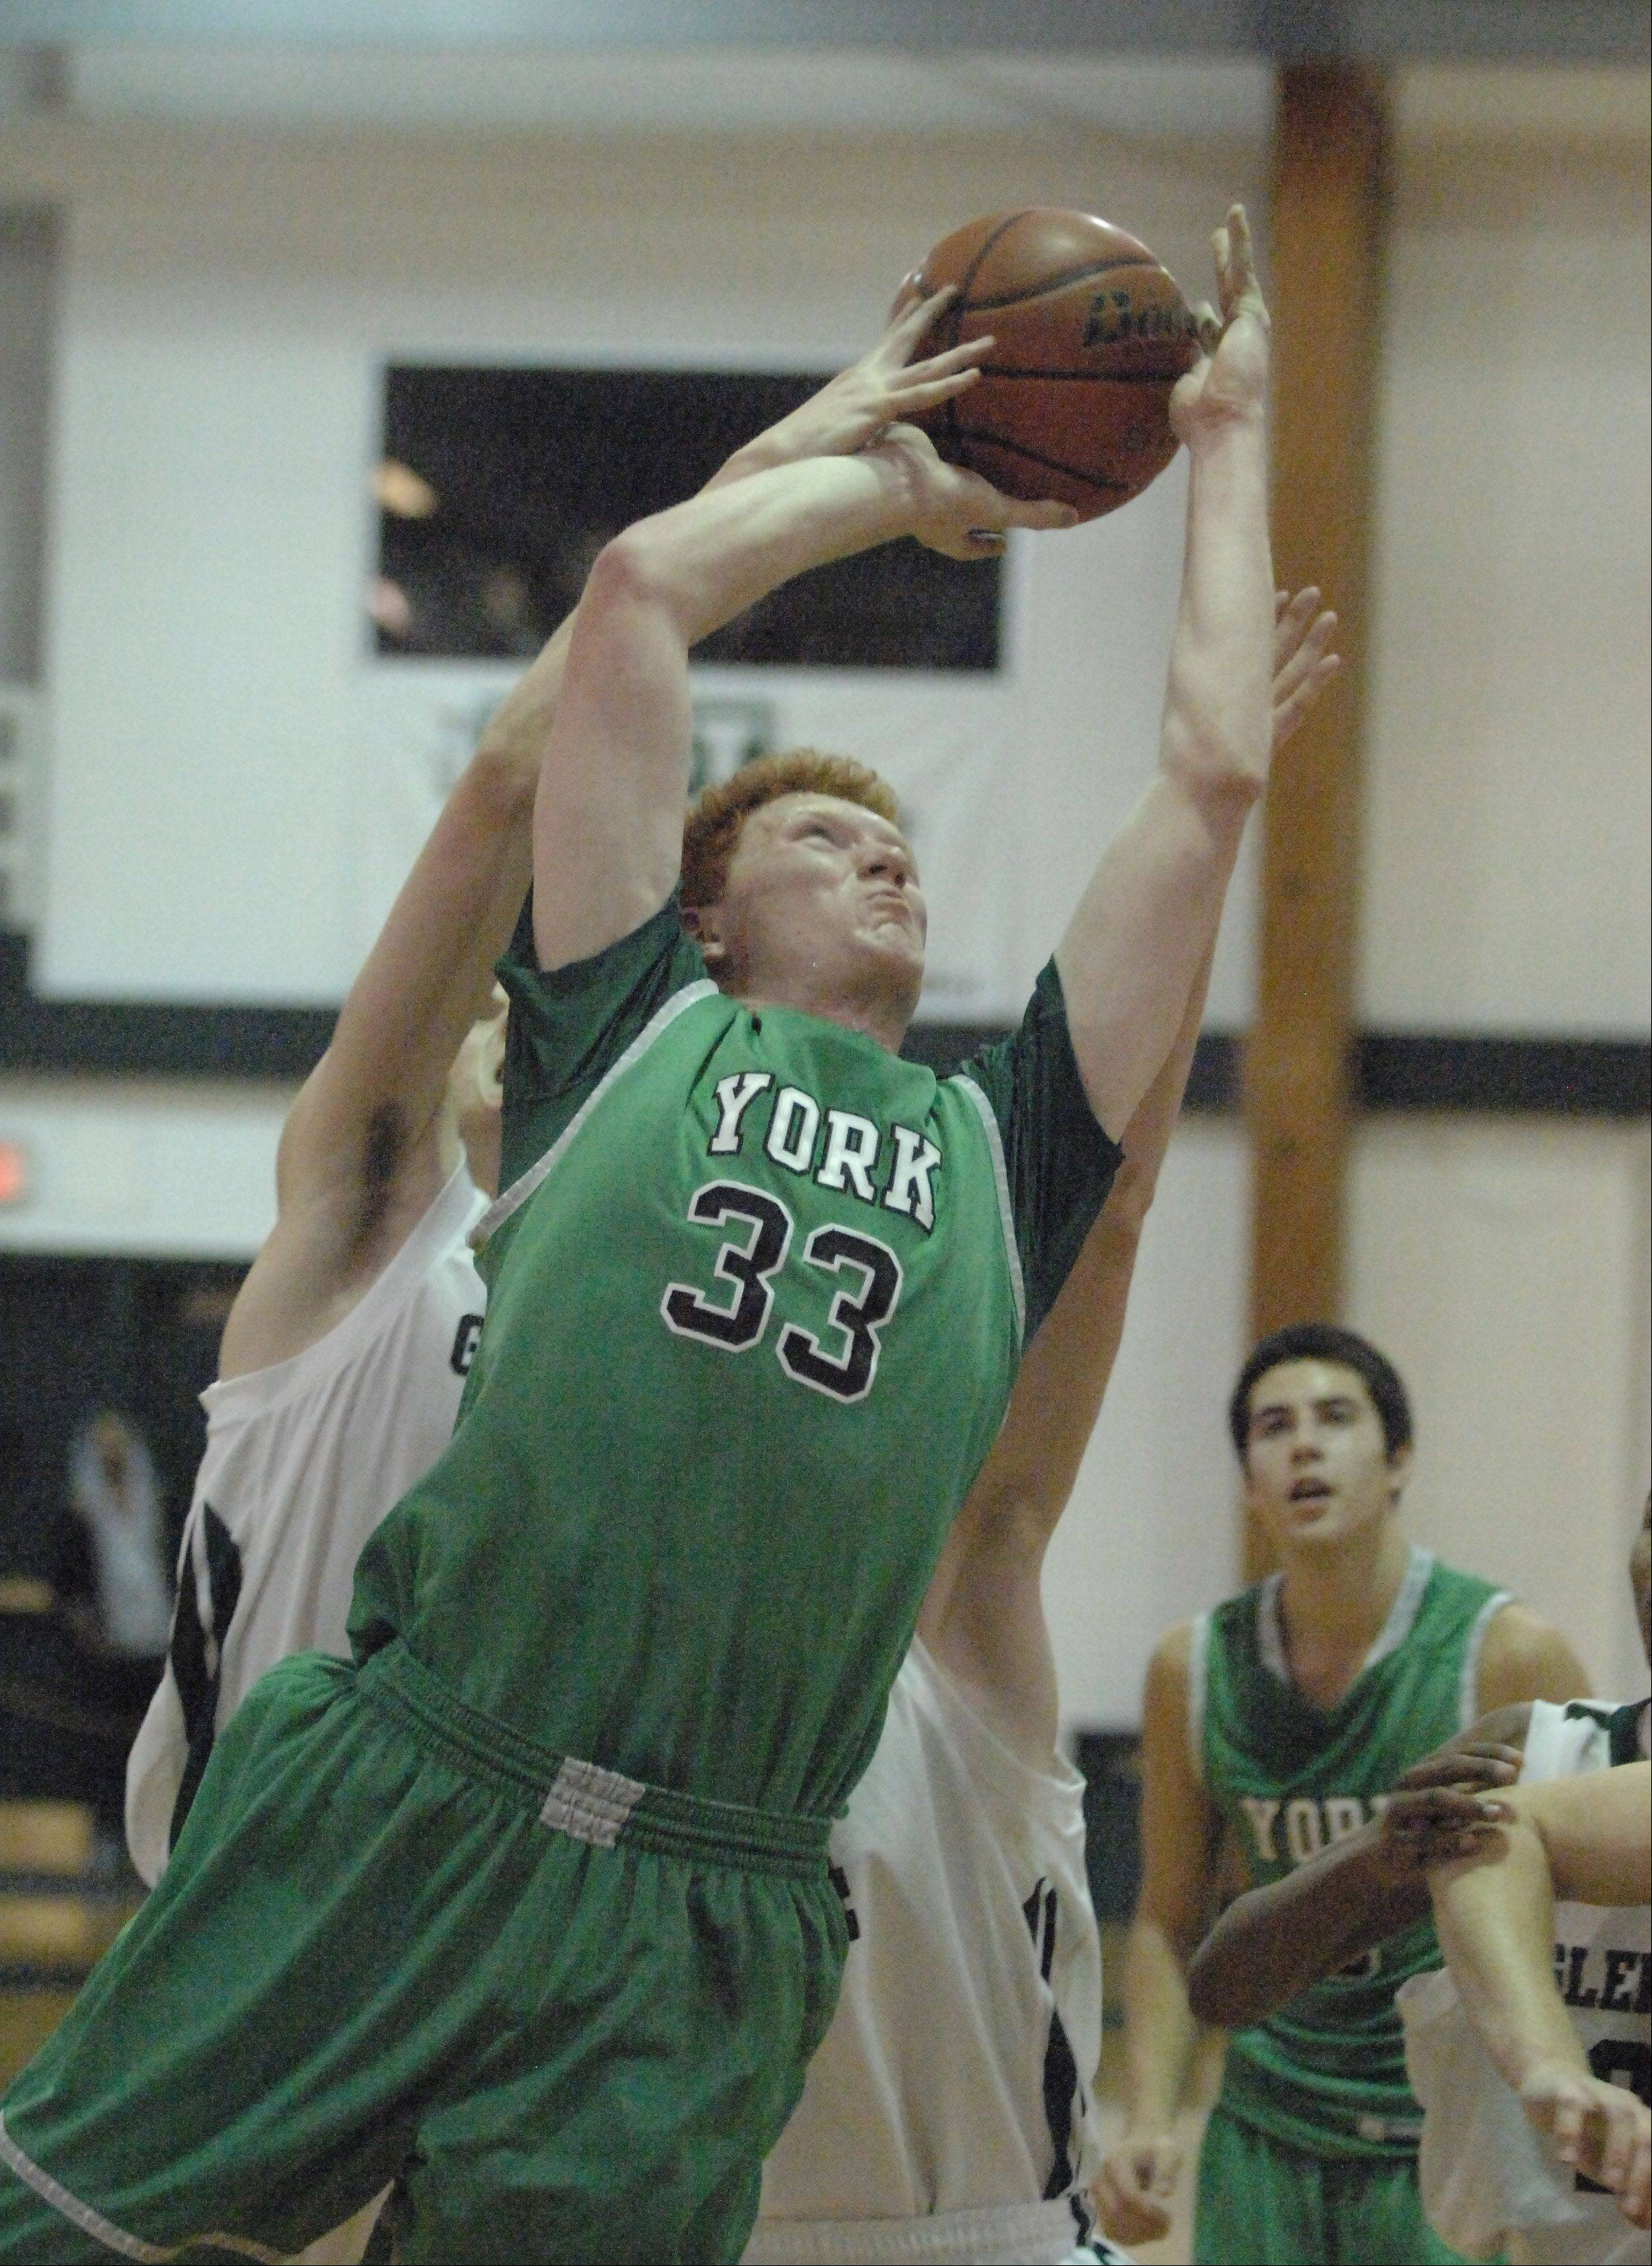 Frank Toohey of York takes a shot during the York at Glenbard West boys basketball game Friday.